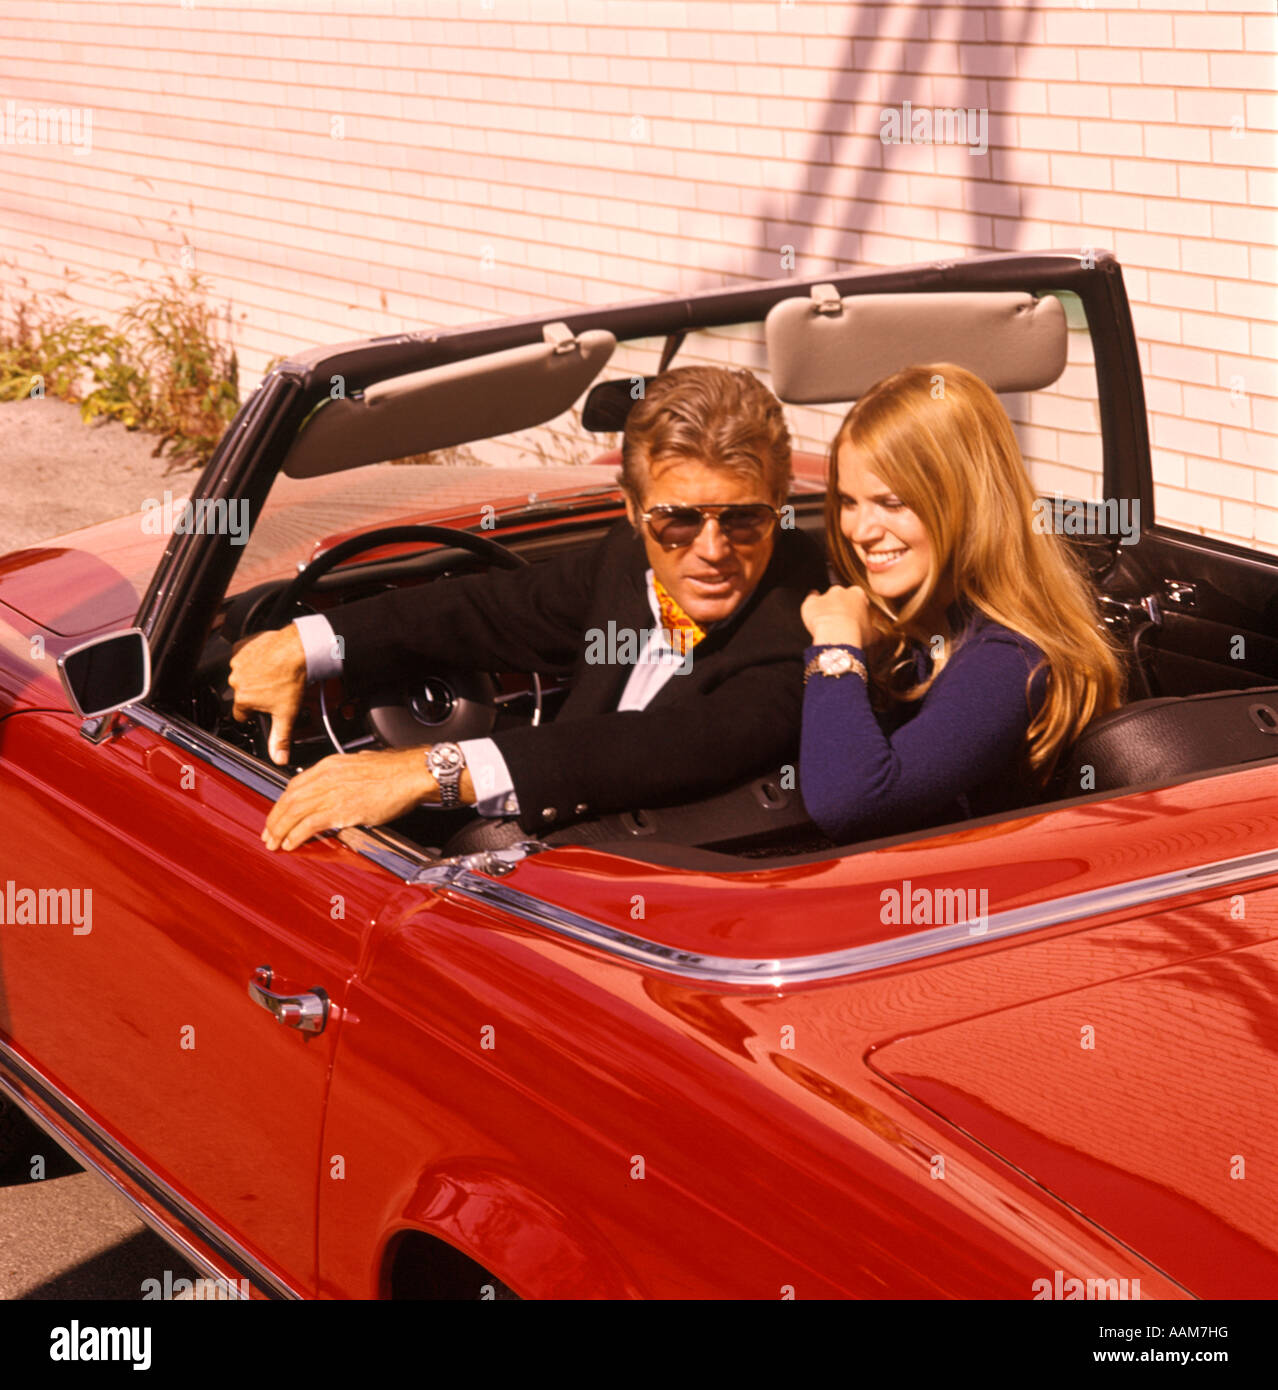 Couple Man Woman Sports Car Convertible Swingers Suave Hip